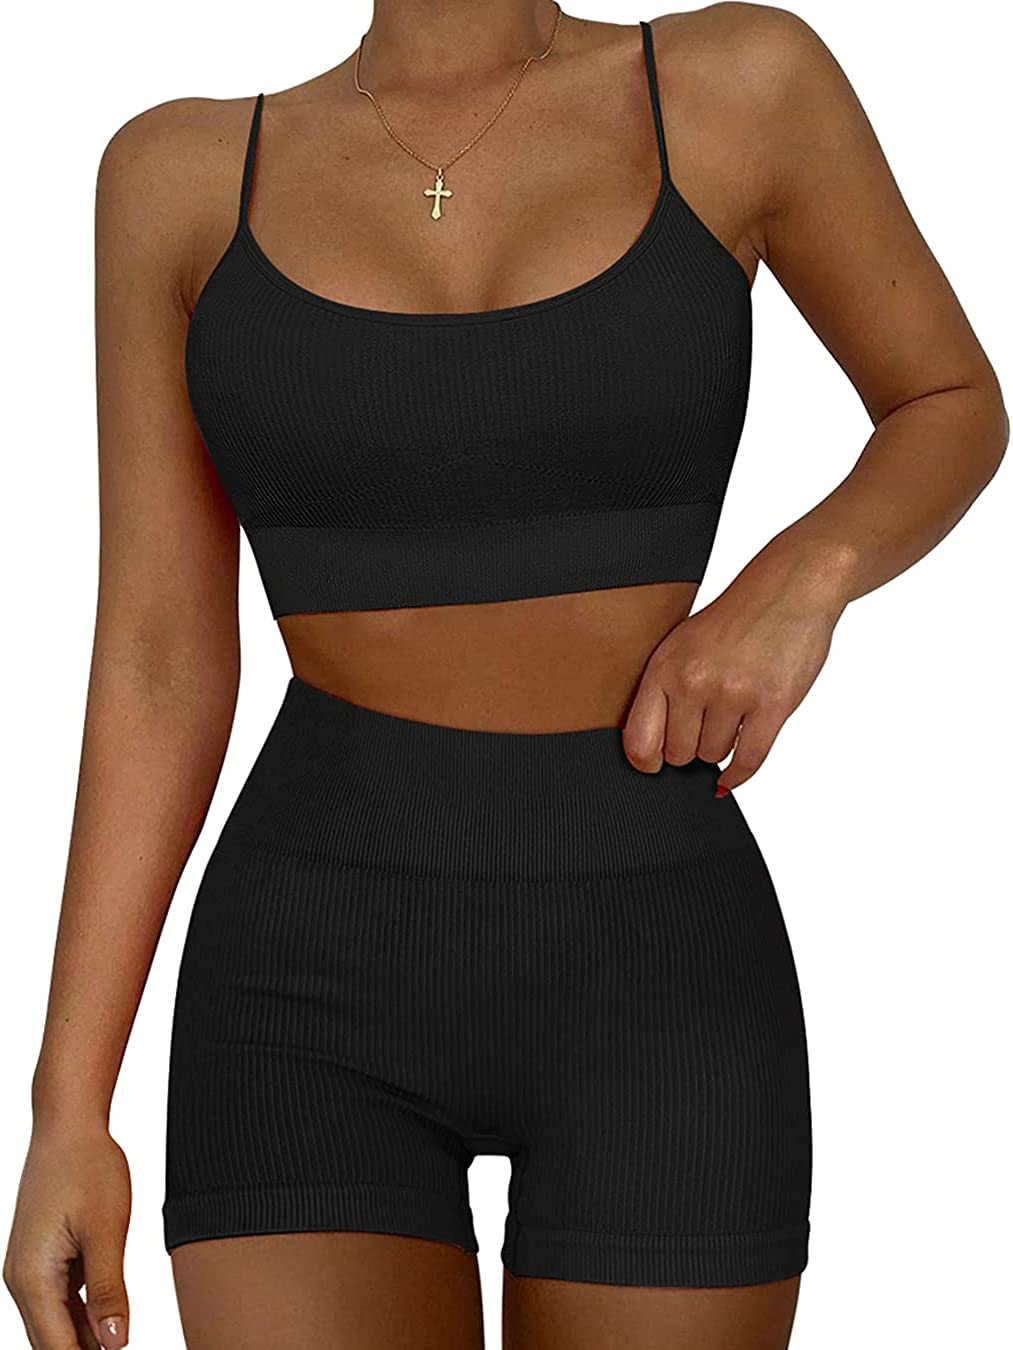 OYS Women's Workout Set 2 Piece Sports High order Fixed price for sale Seamless Bra High Strappy